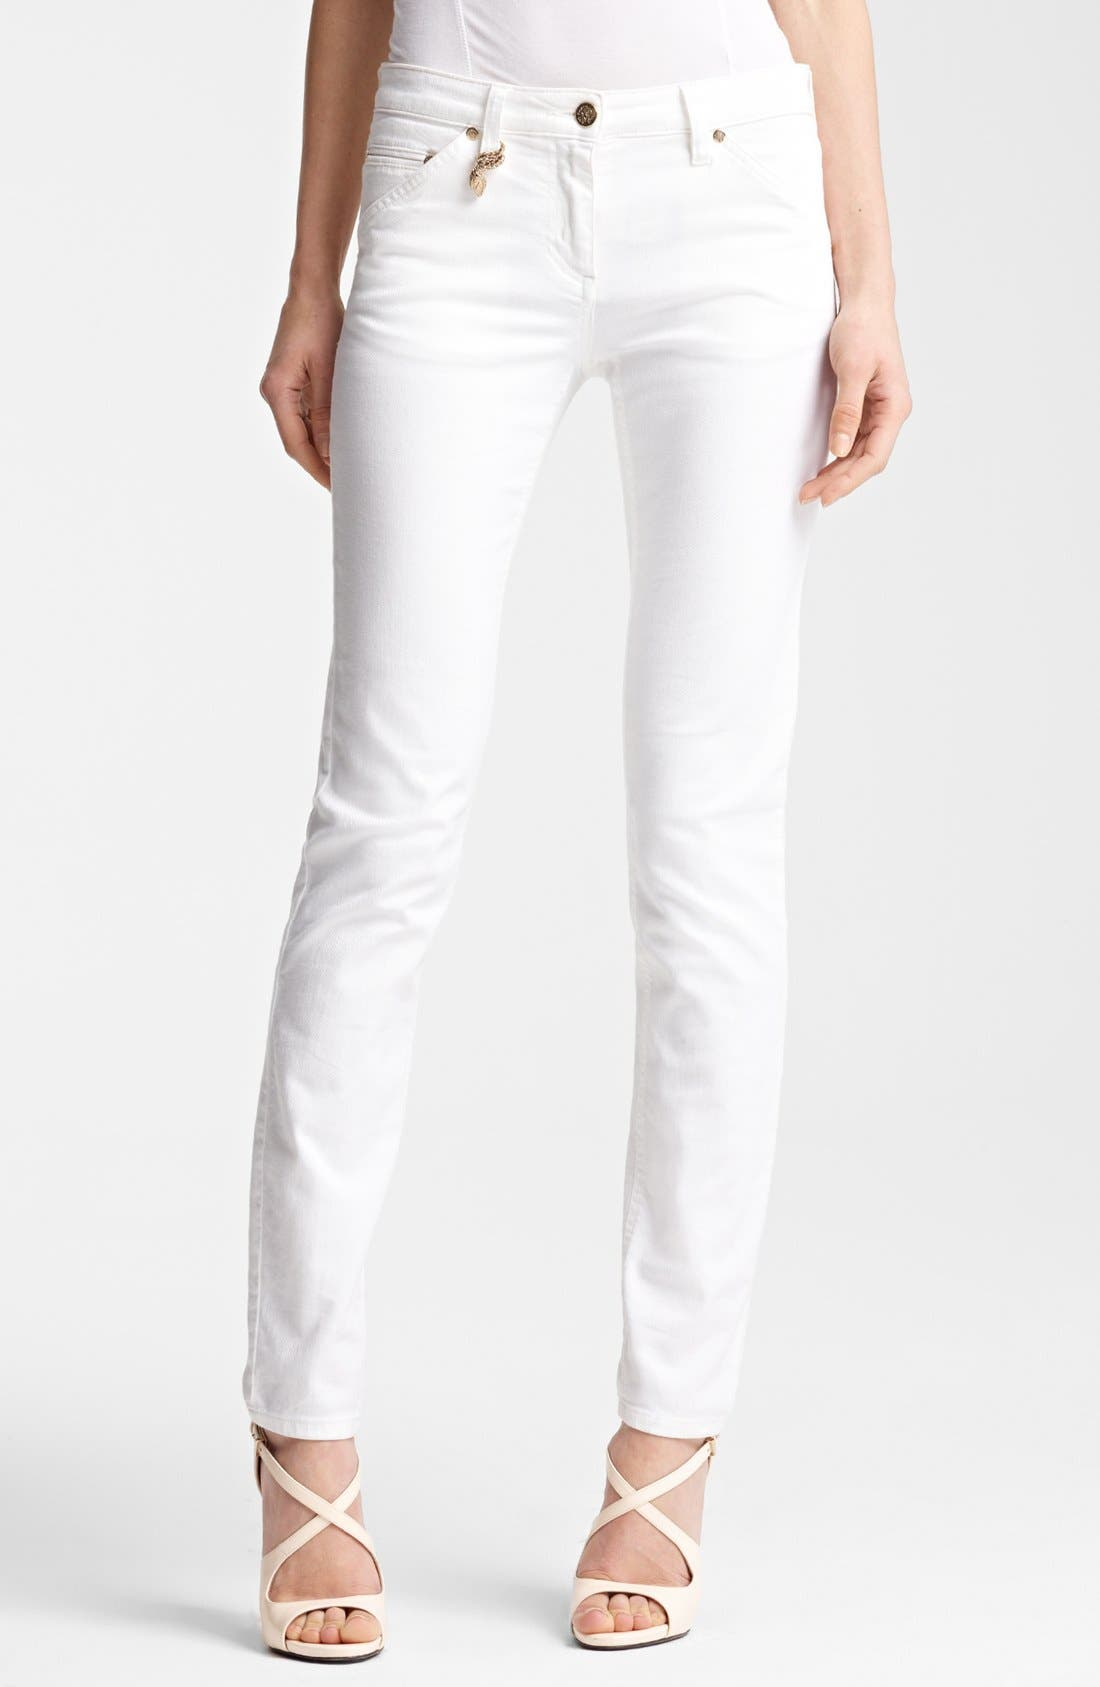 Alternate Image 1 Selected - Roberto Cavalli Skinny Stretch Jeans